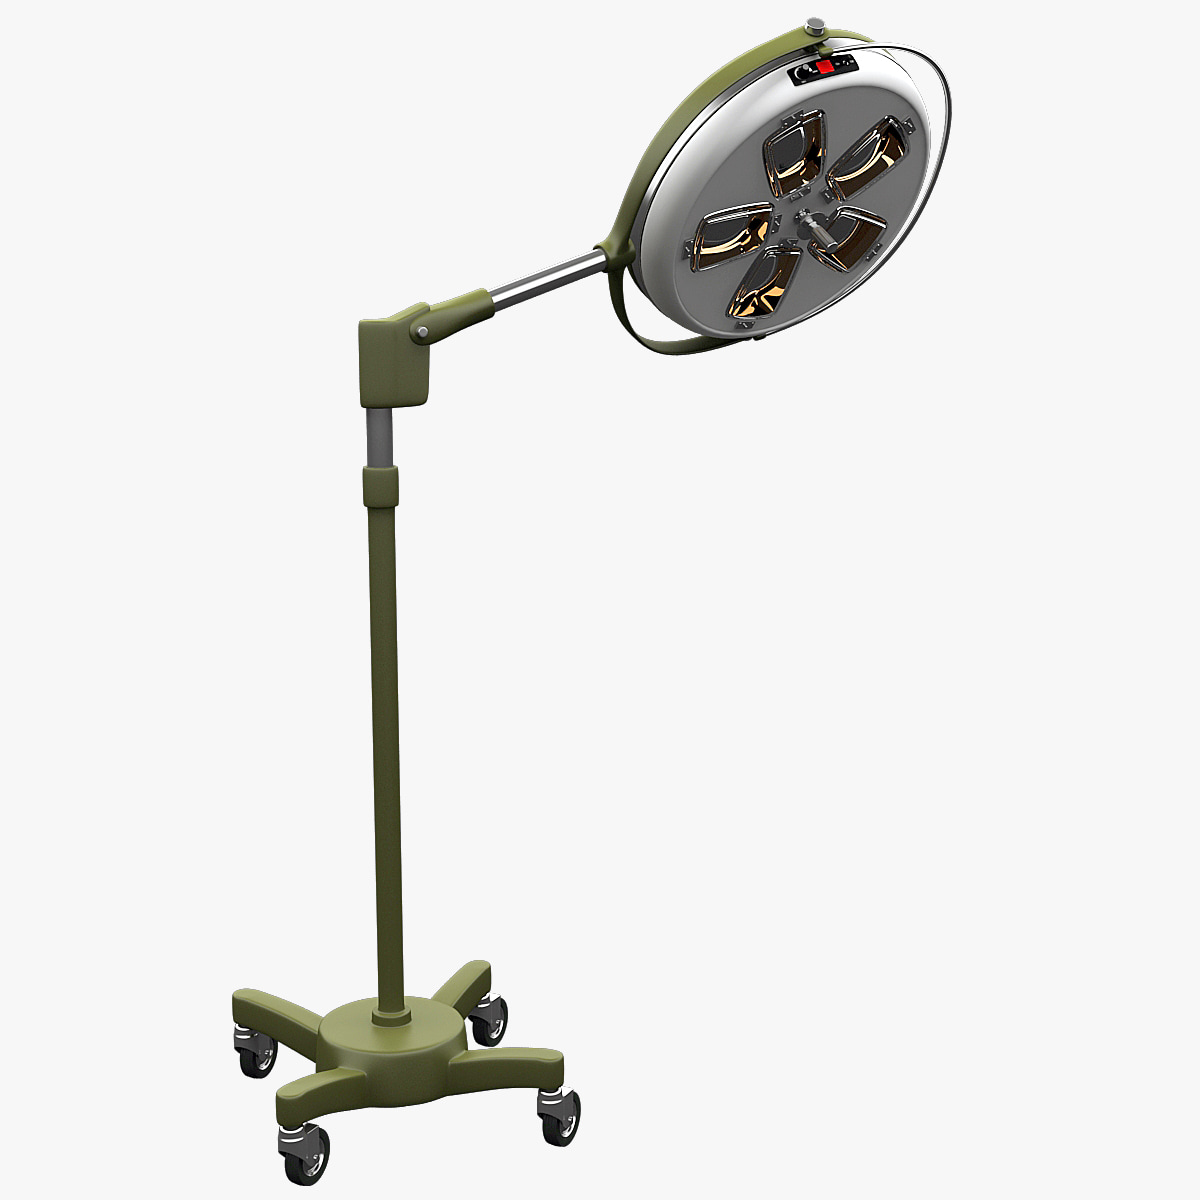 Mobile_Medical_Lamp_OLH51_Vray.jpg